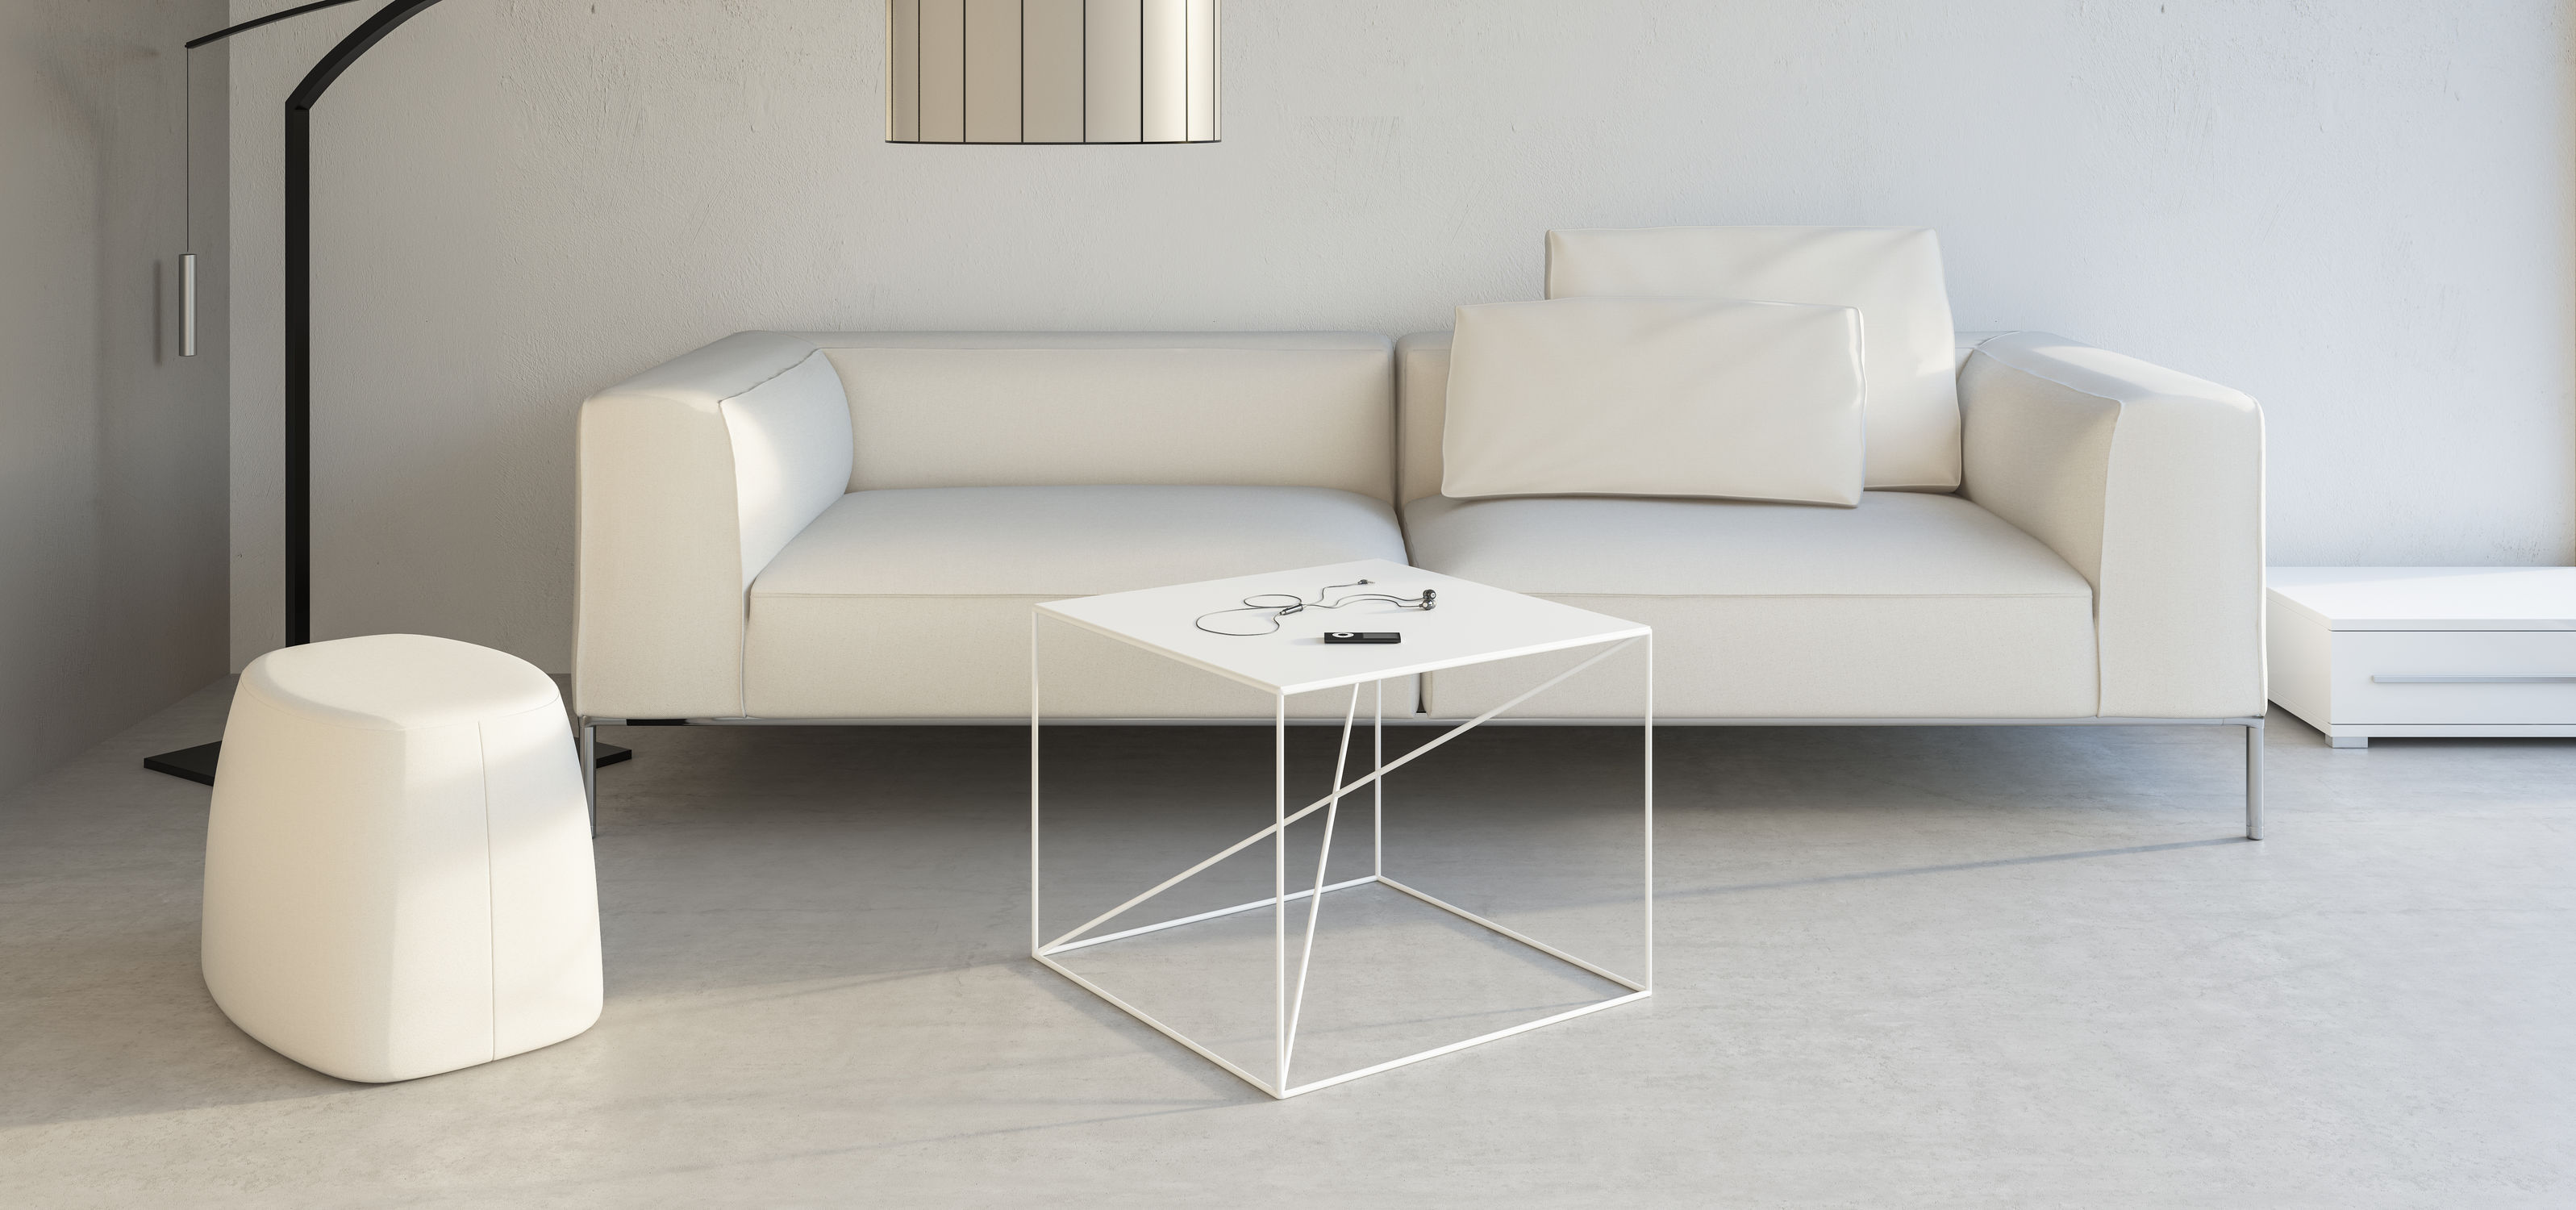 ... Contemporary Coffee Table / Powder Coated Steel / Rectangular / White  SMALL X Take Me ...